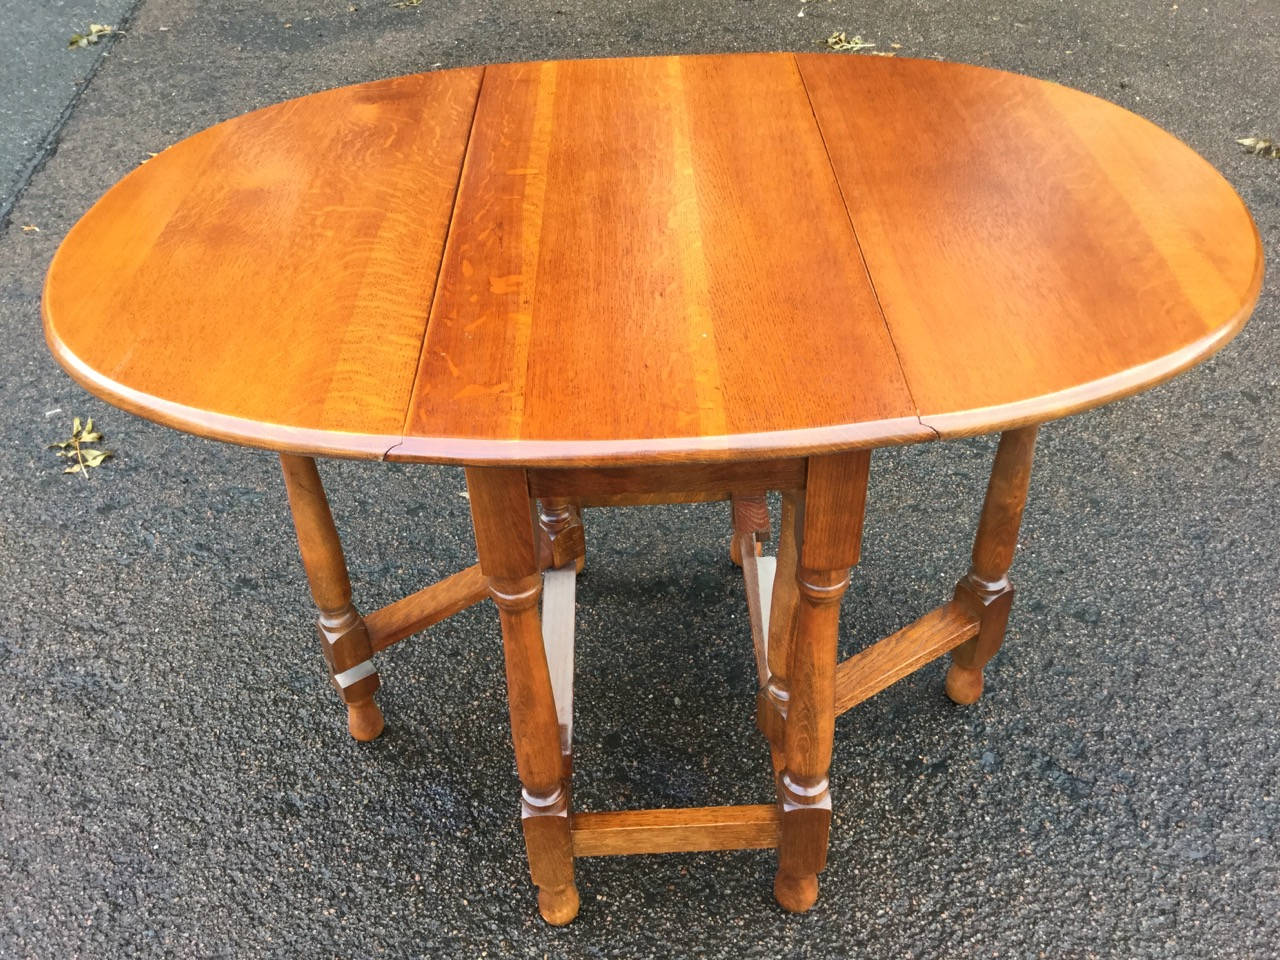 Lot 18 - An oval oak gateleg dining table, the moulded top with two drop-leaves raised on baluster turned